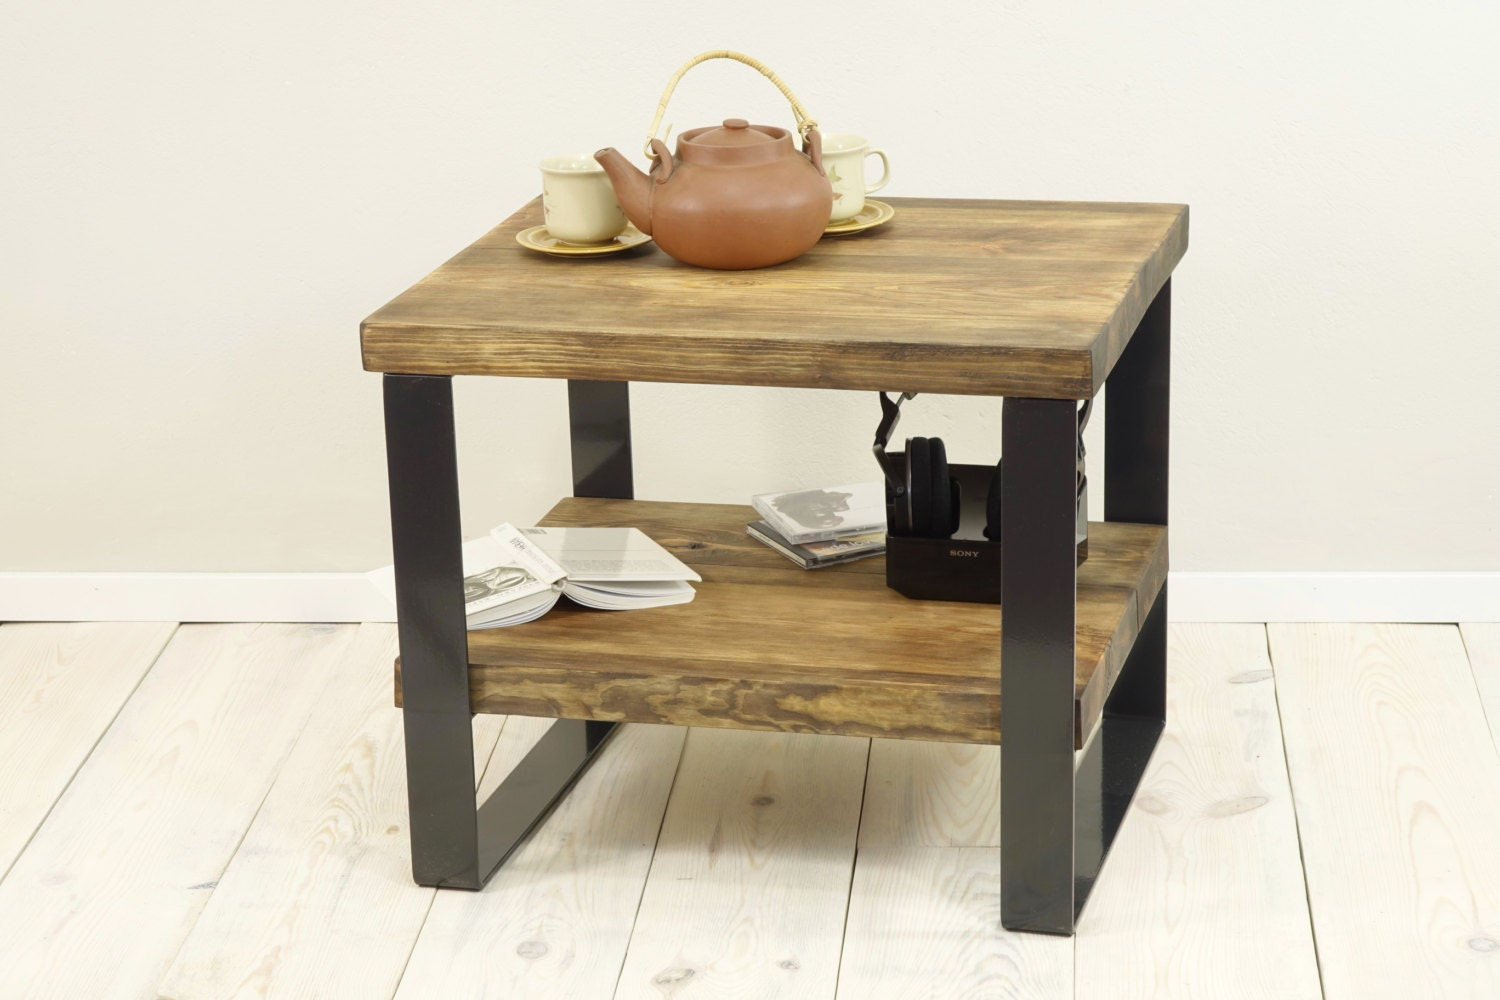 Reclaimed wood side table level coffee plank